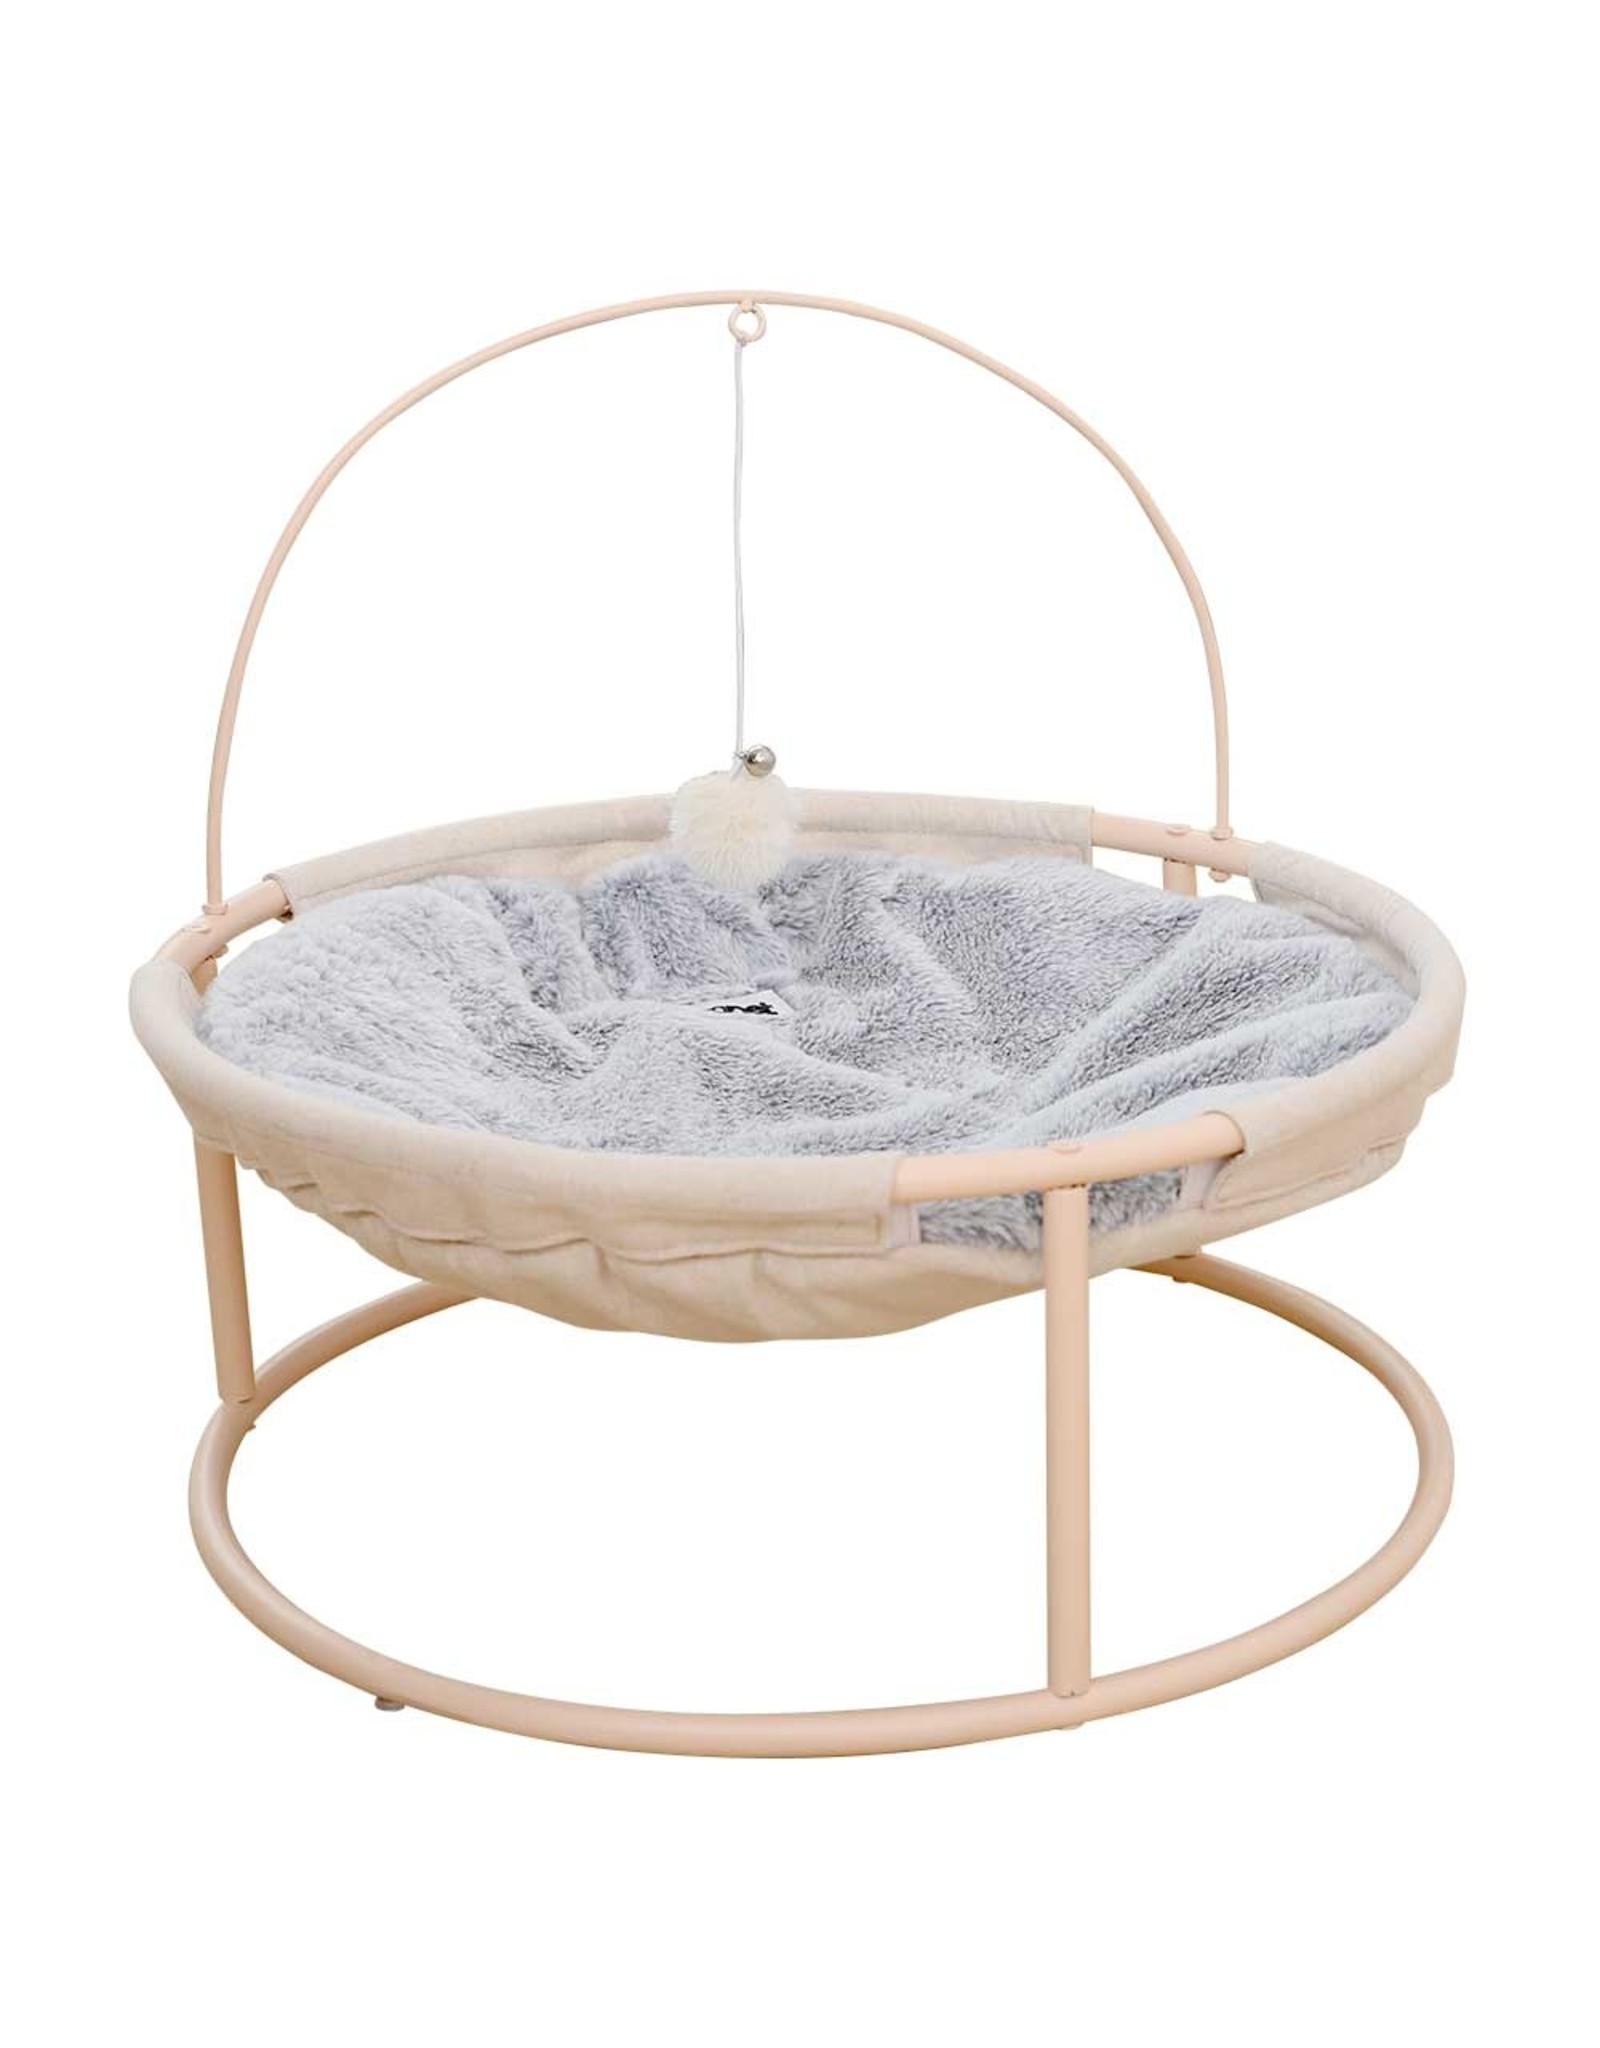 Beausoleil Beausoleil Round Cat Bed with steel support